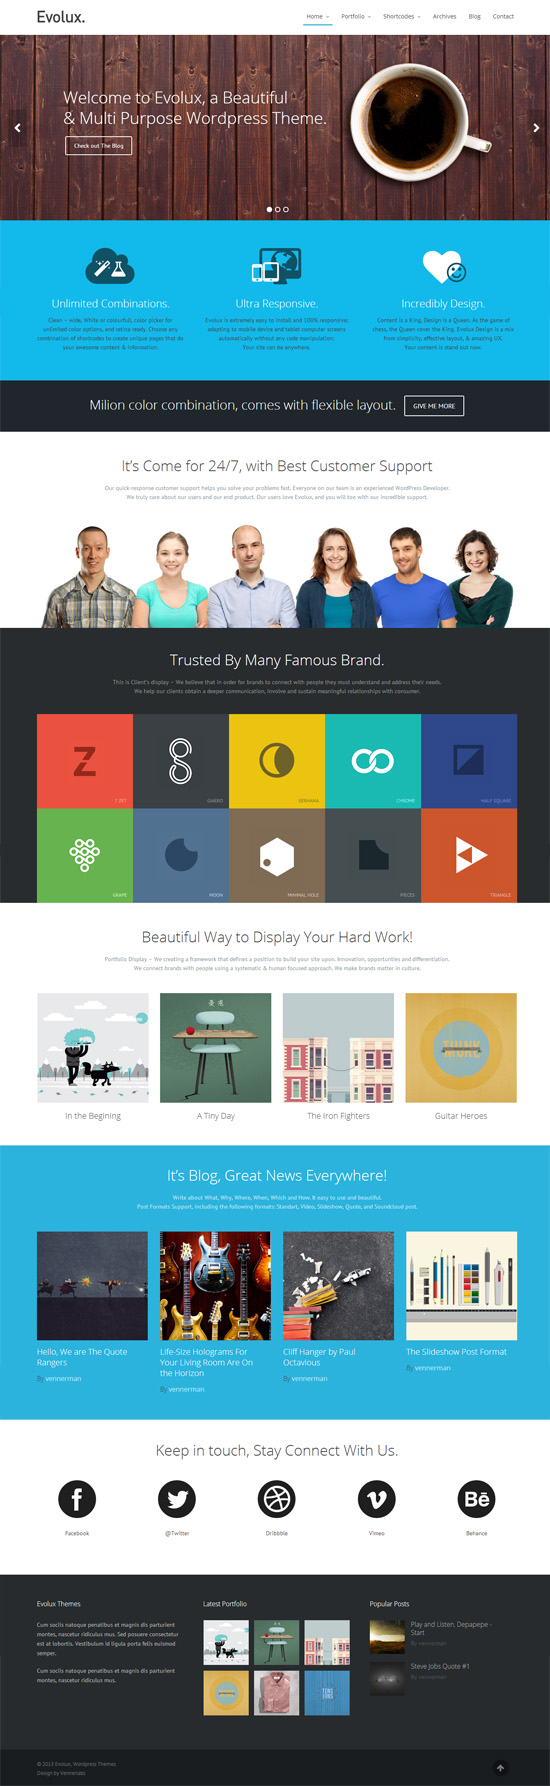 Evolux - Responsive Multi-Purpose WordPress Theme